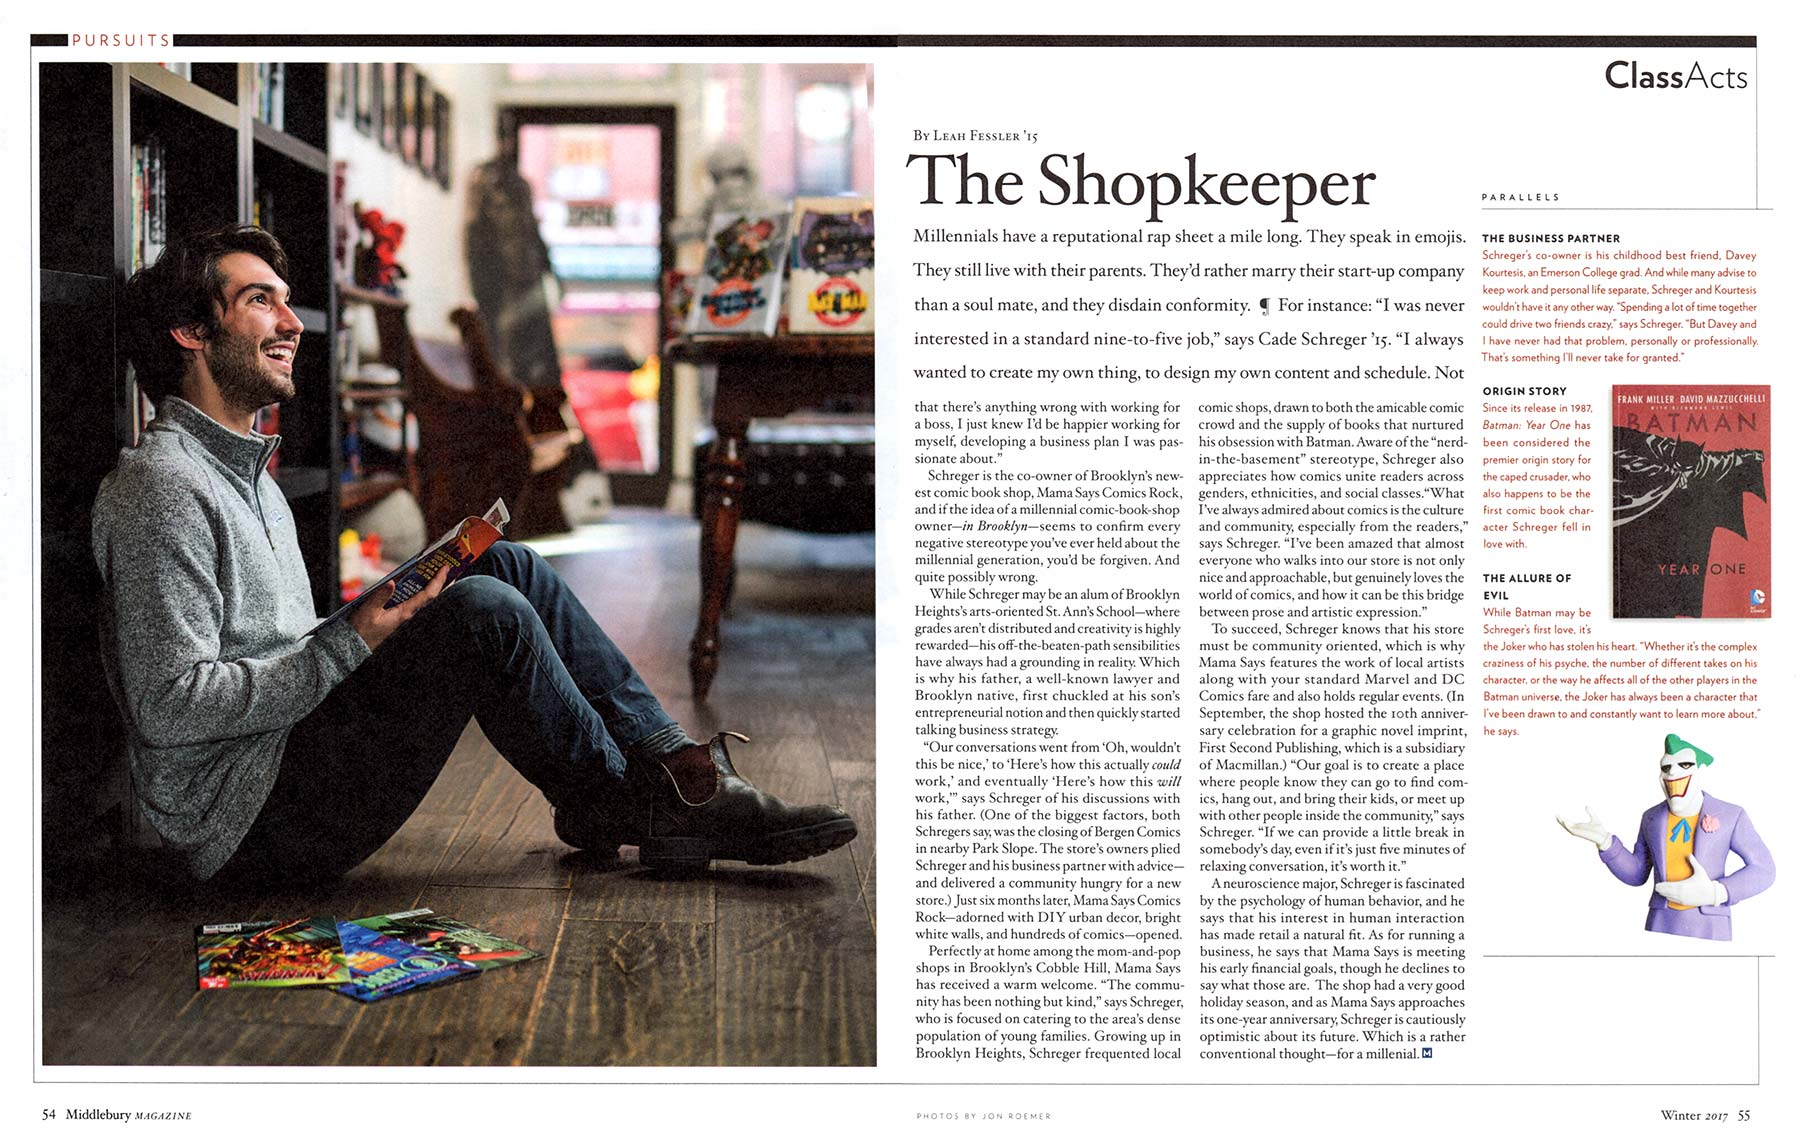 Middlebury Magazine - The Shopkeeper